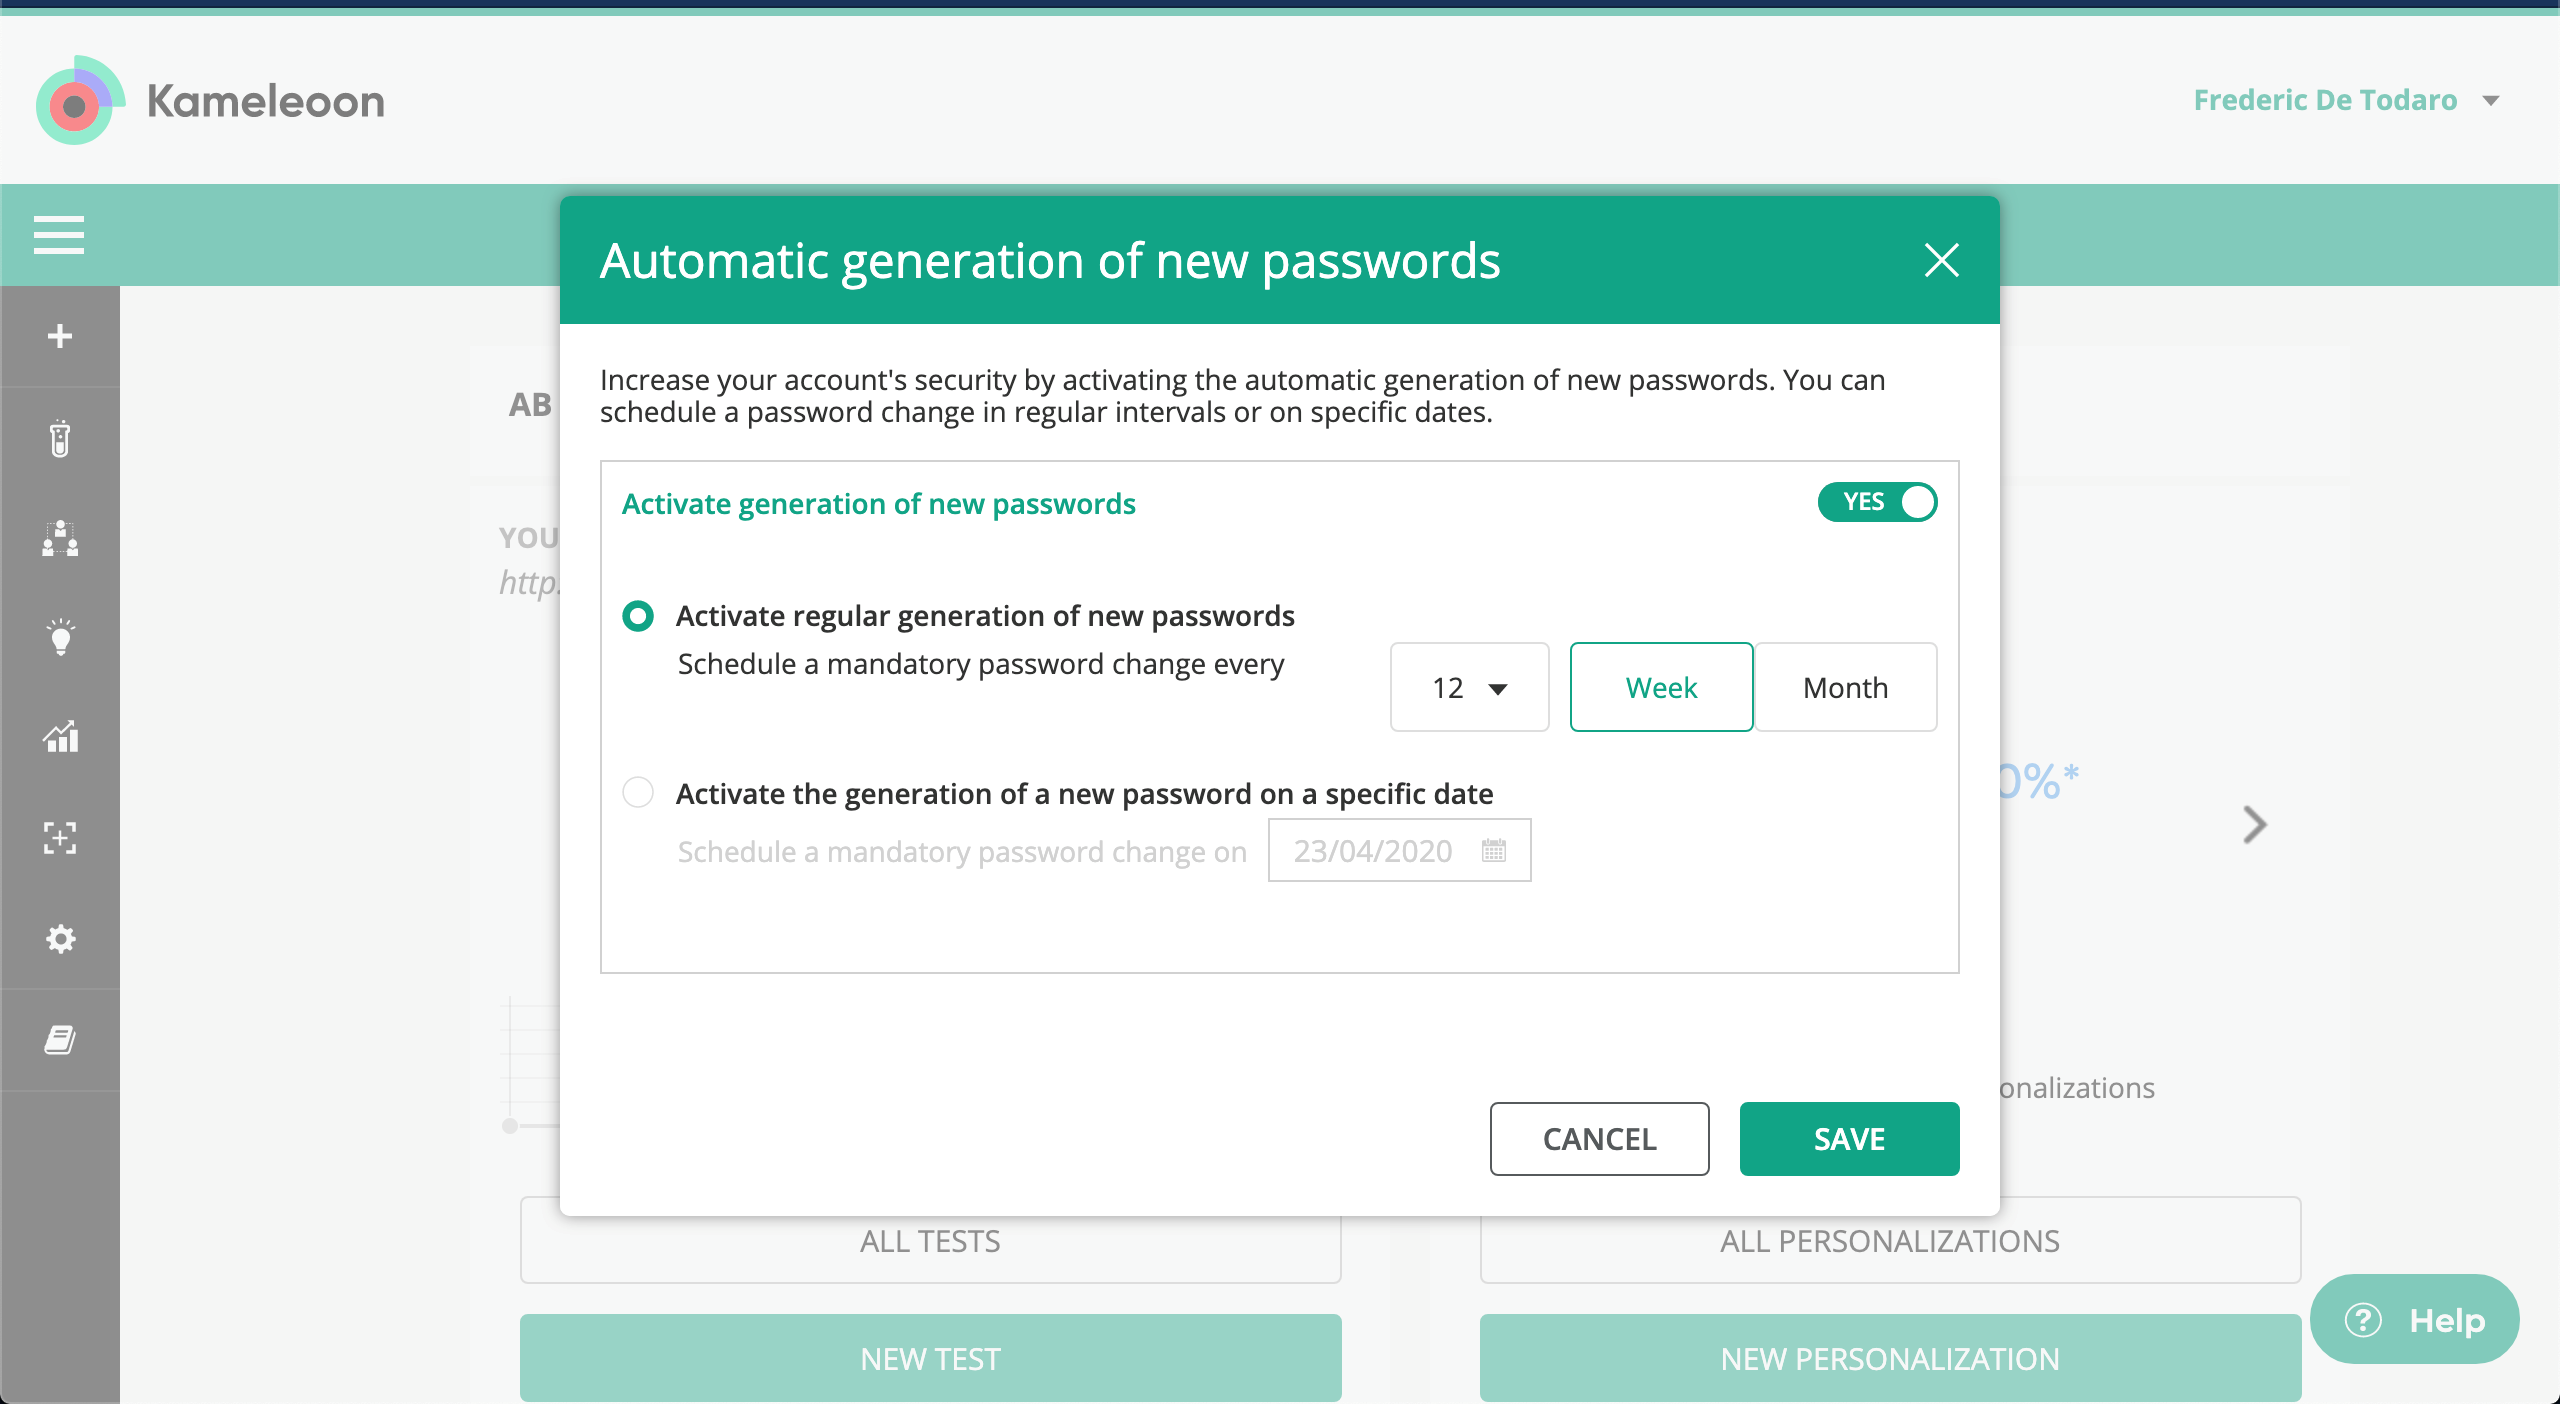 Automatic generation of new passwords